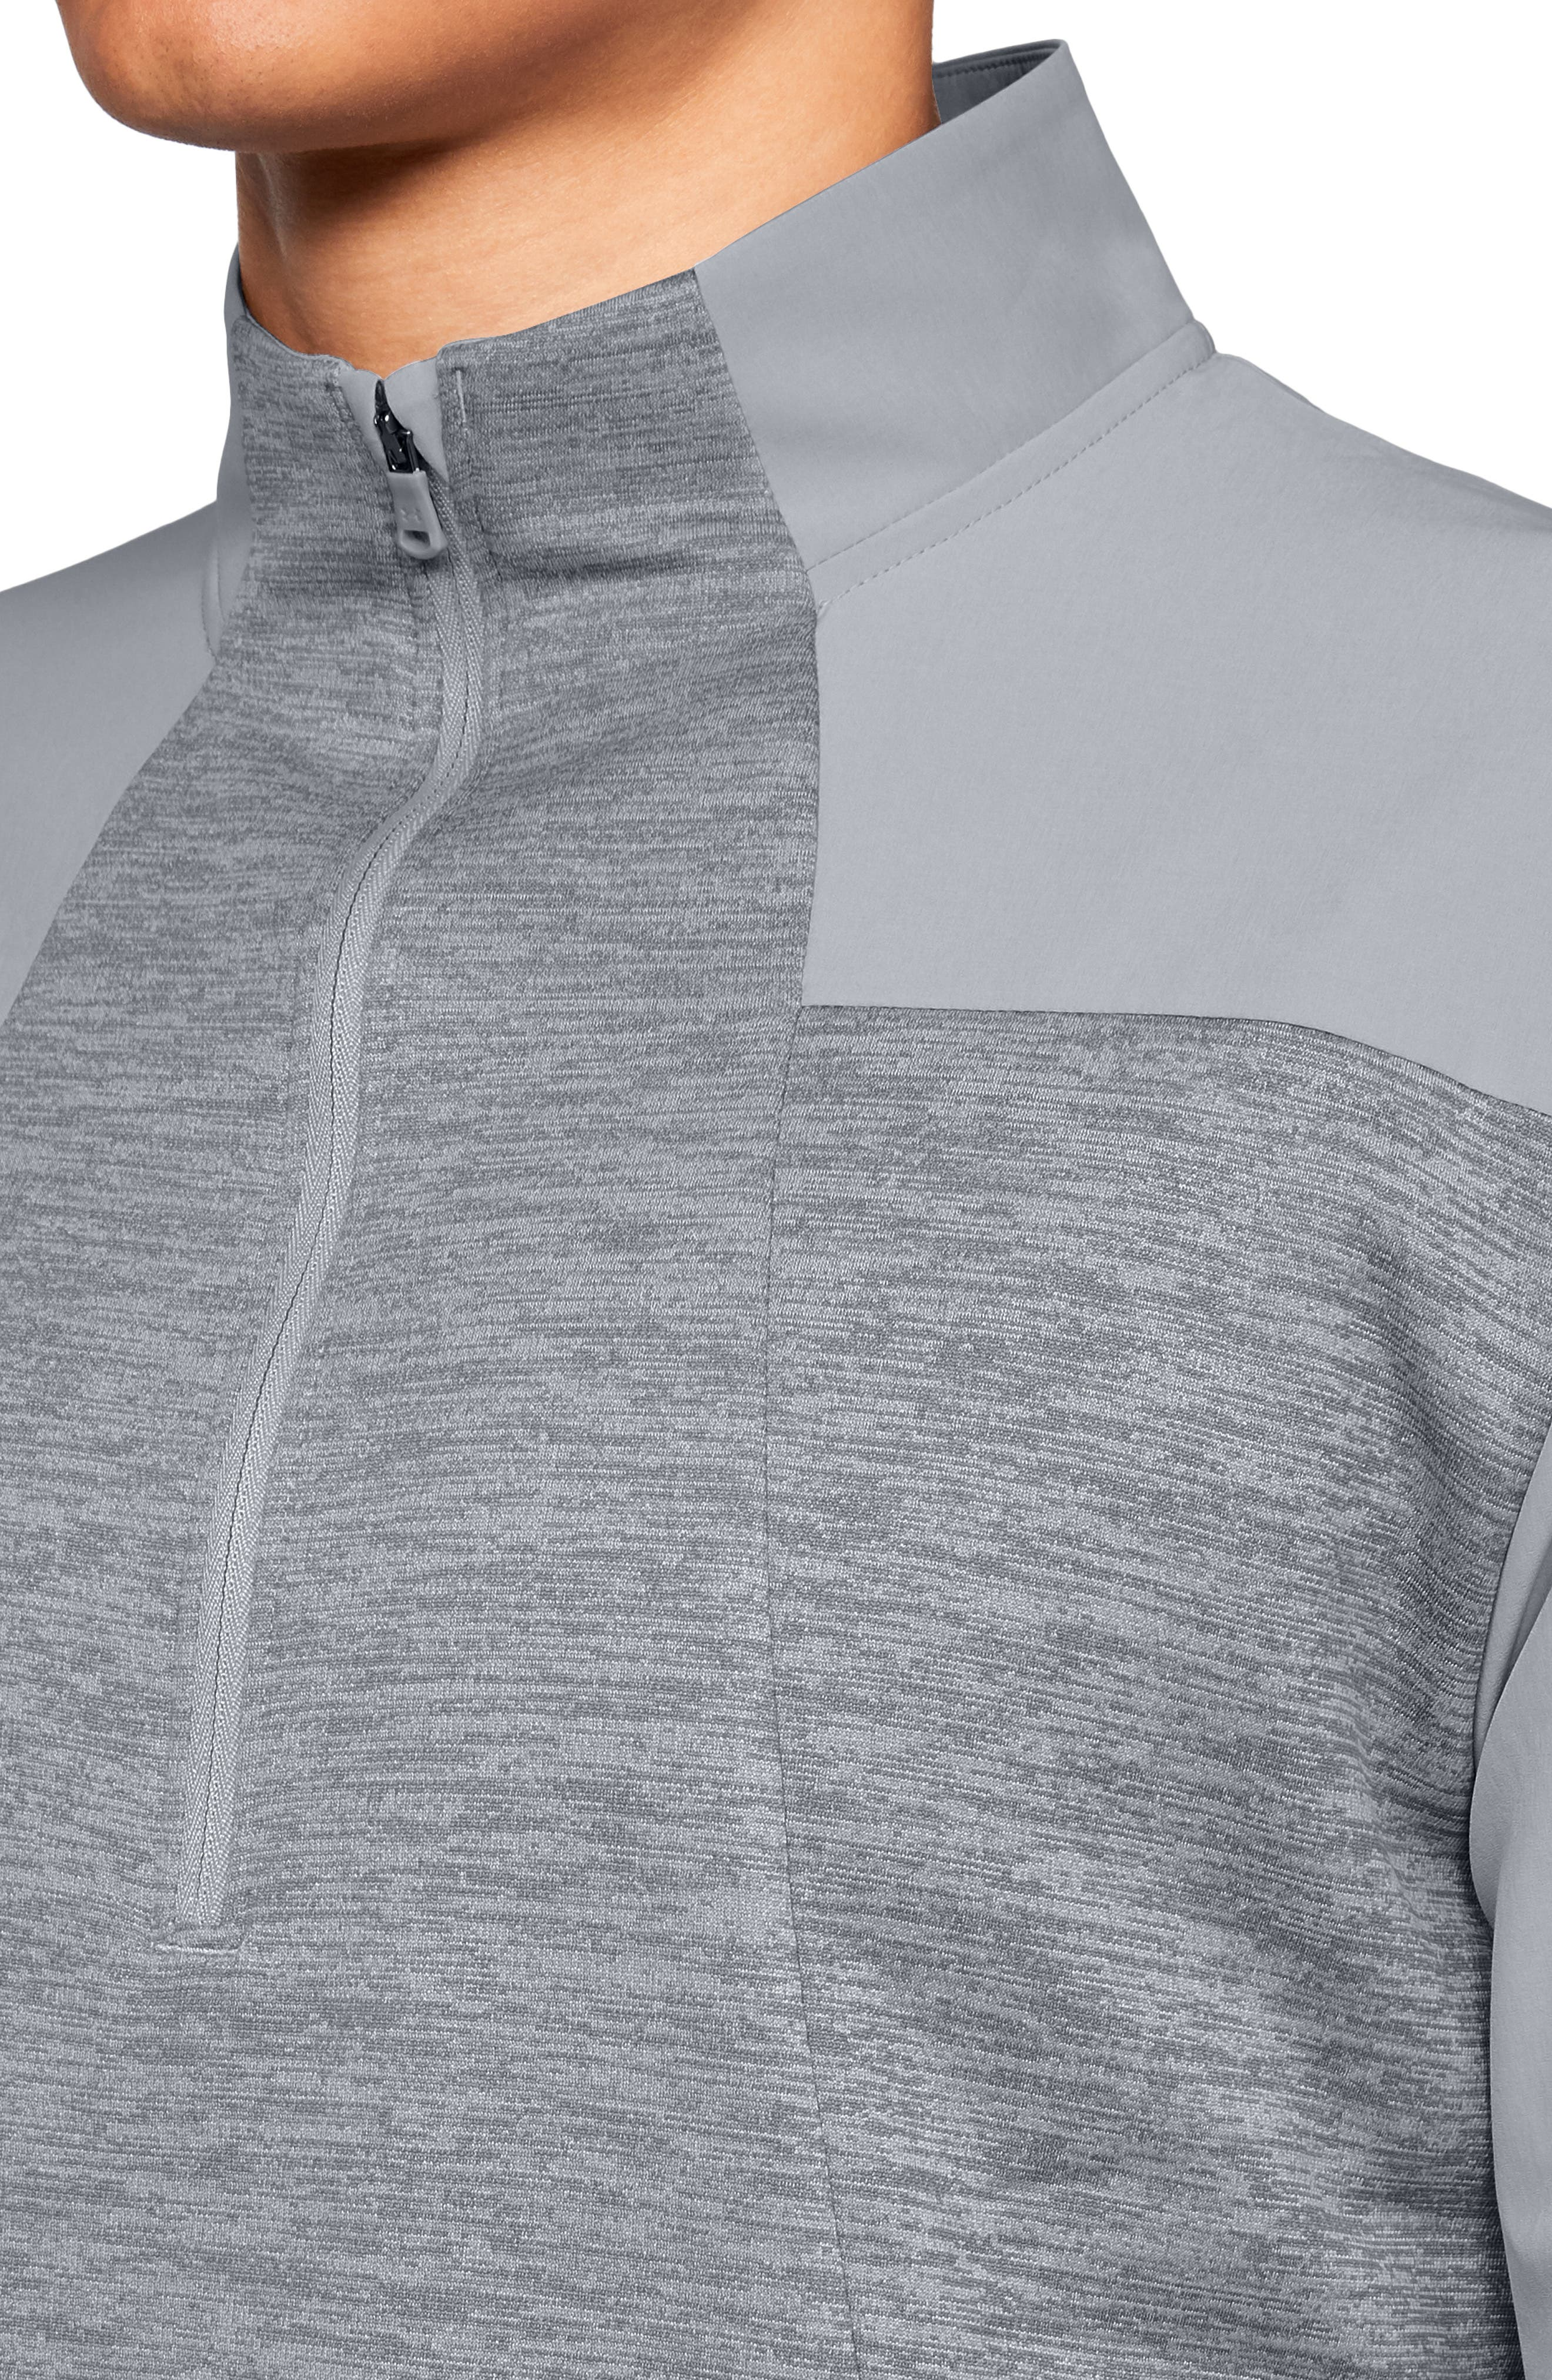 UNDER ARMOUR, Storm Cyclone Water Repellent Quarter Zip Pullover, Alternate thumbnail 3, color, OVERCAST GREY/ BLACK